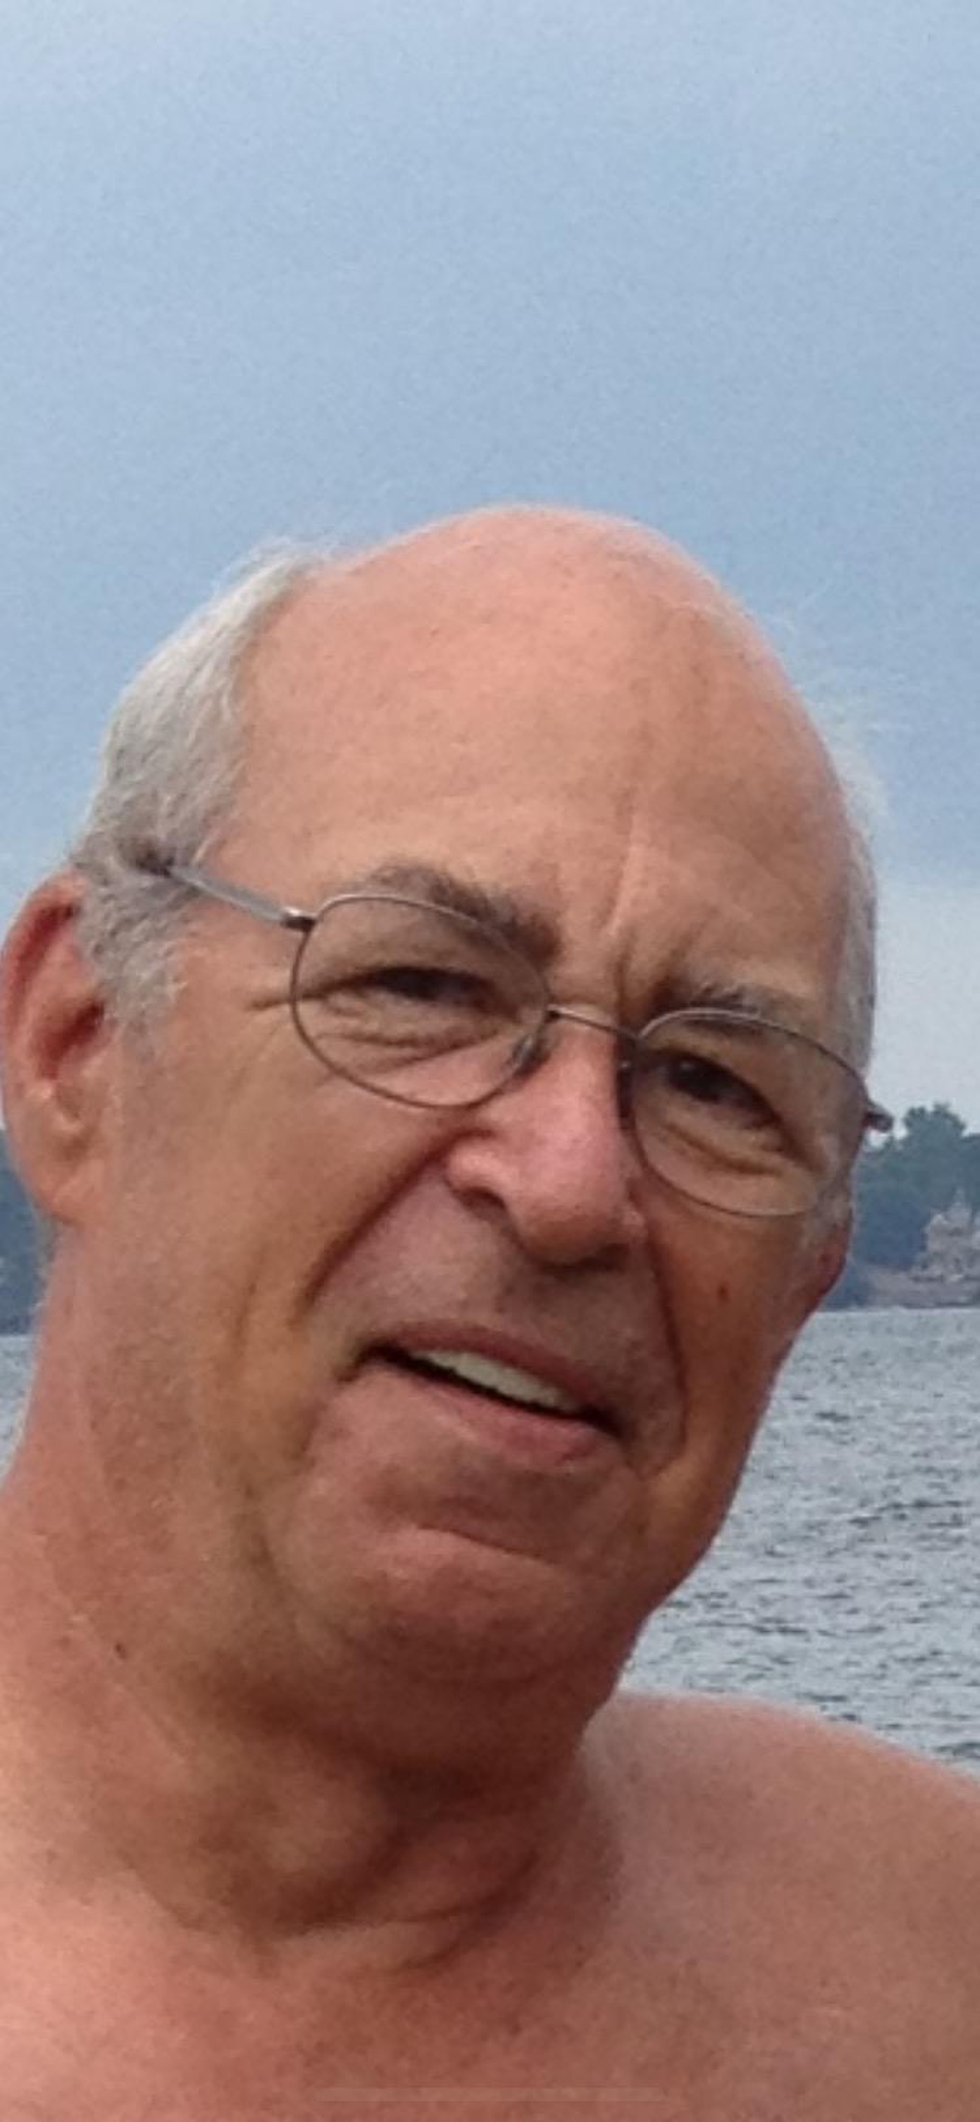 Benjamin L. Glascock , 73, of Maryville, Tennessee died on April 24, 2021 after a lengthy...